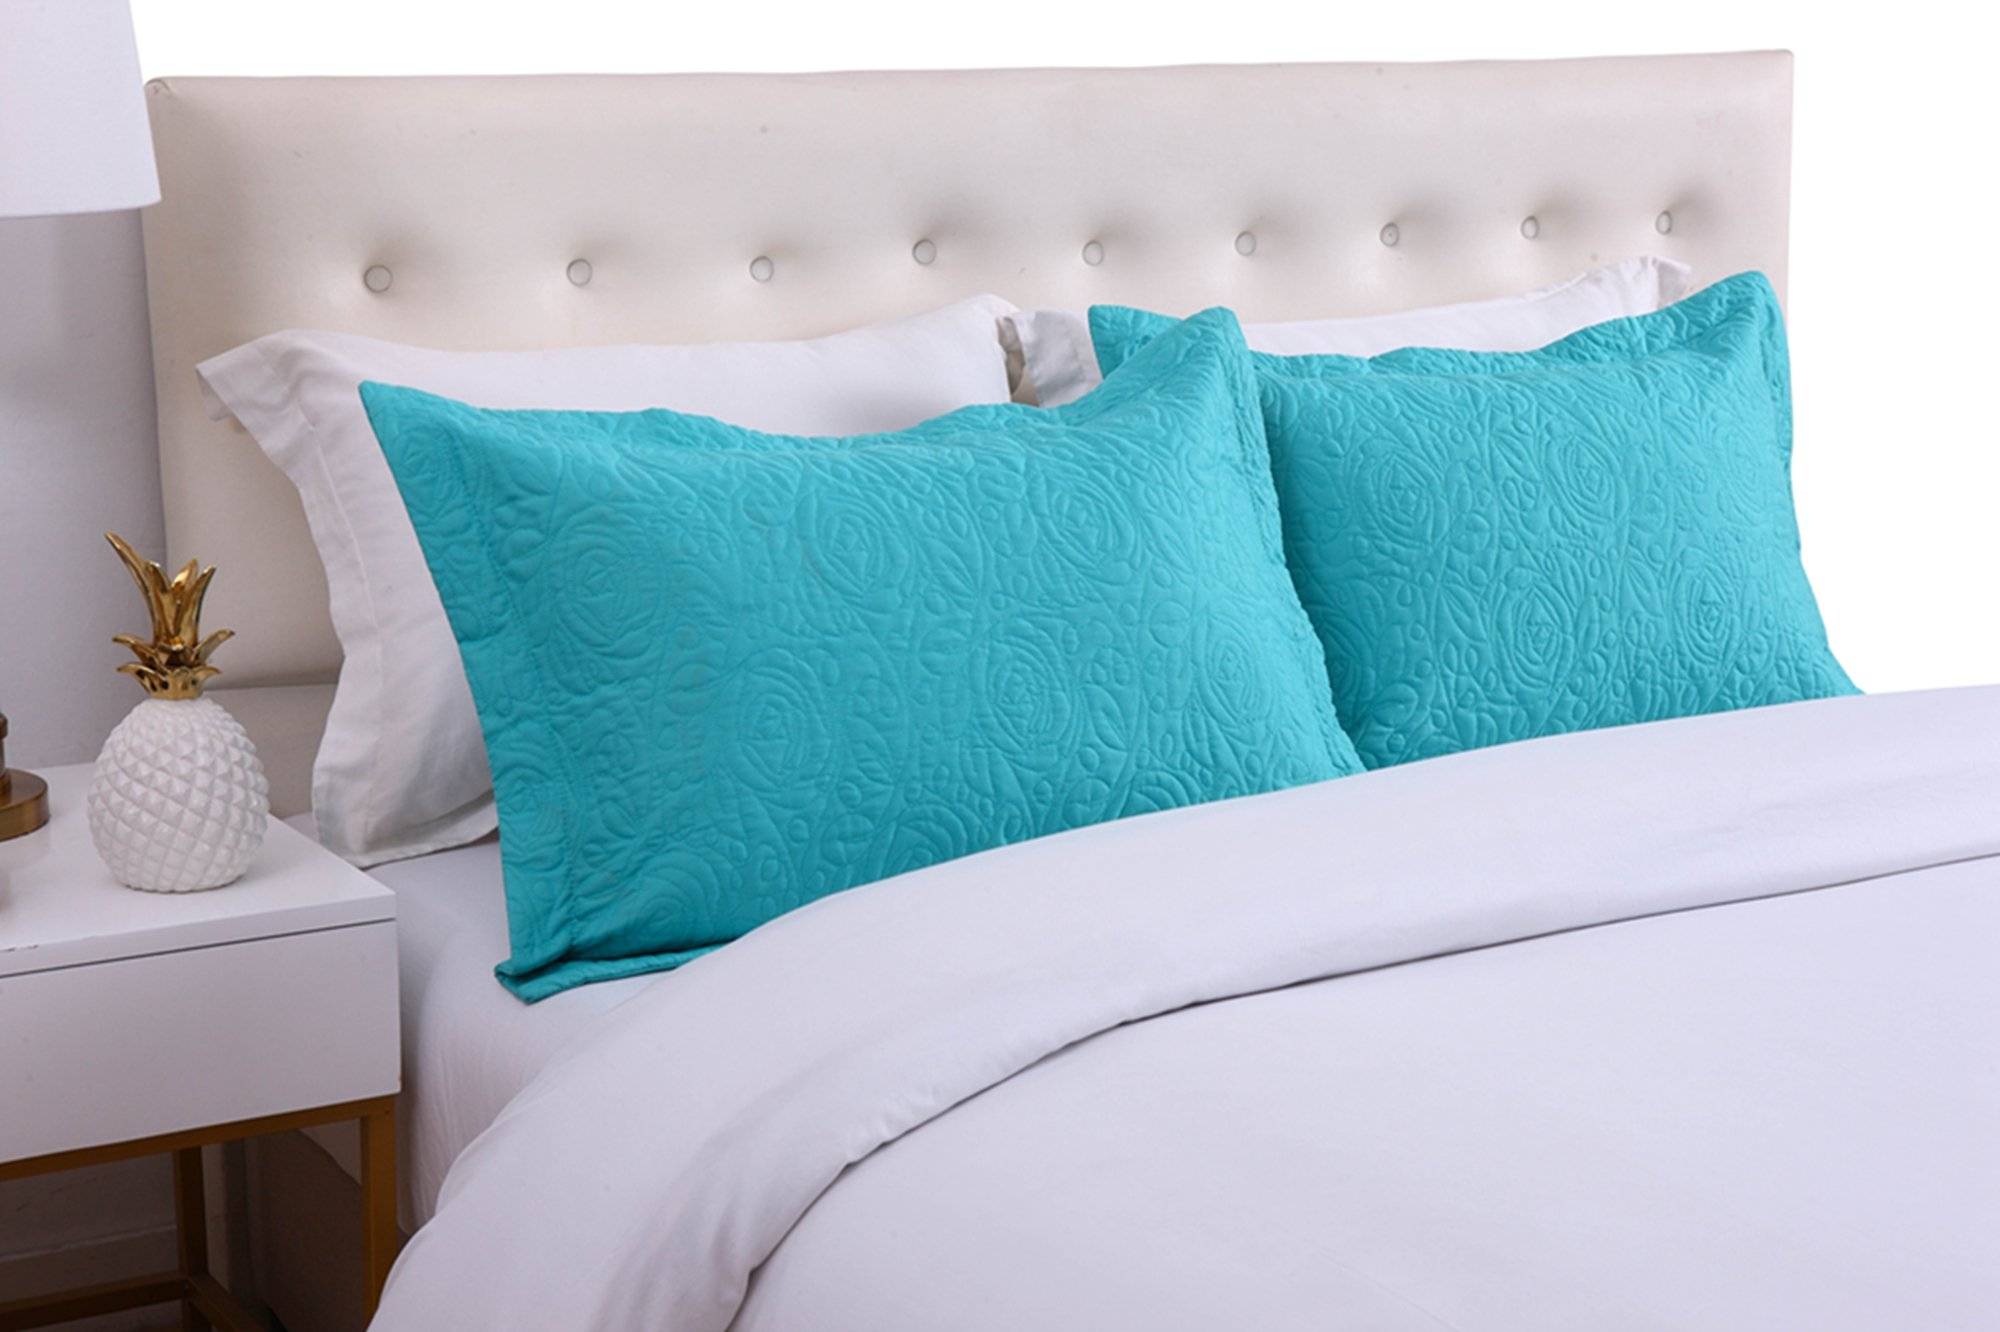 MarCielo 2-Piece Embroidered Pillow Shams, King Decorative Microfiber Pillow Shams Set, King Size (Turquoise)